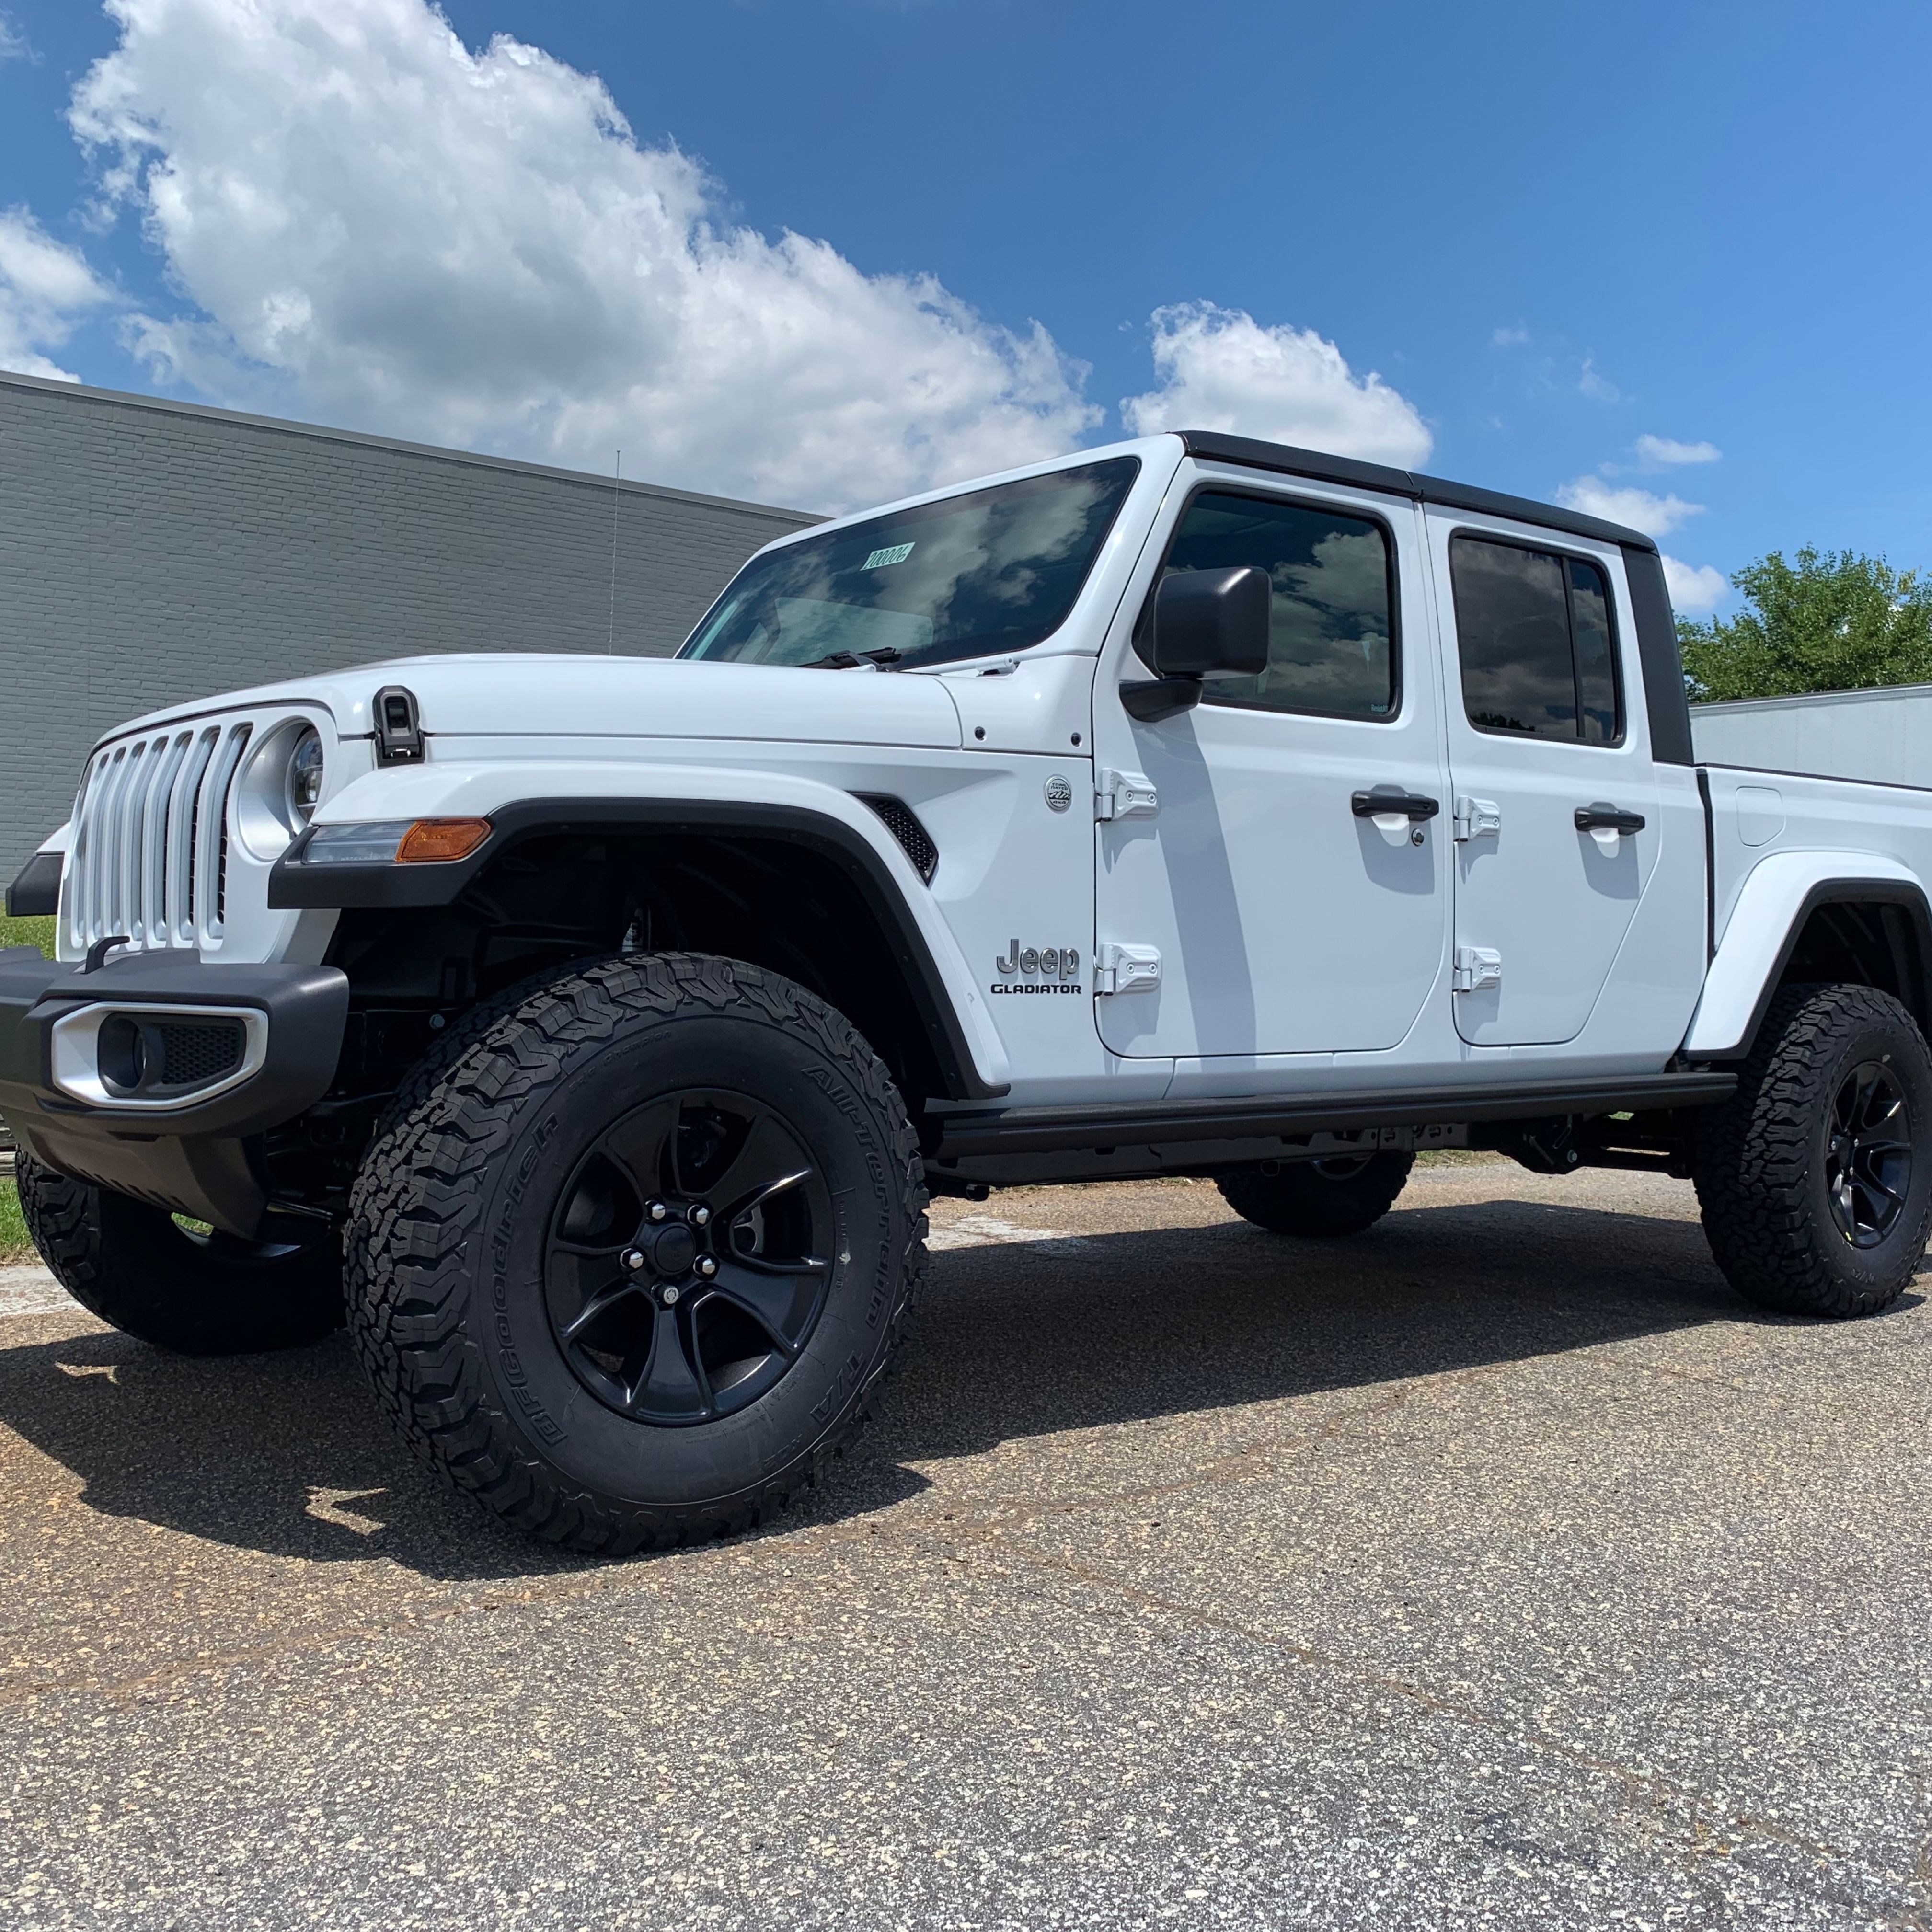 2020 Jeep Gladiator With 2 Mopar Lift Kit And 34 Bfgoodrich Ko2